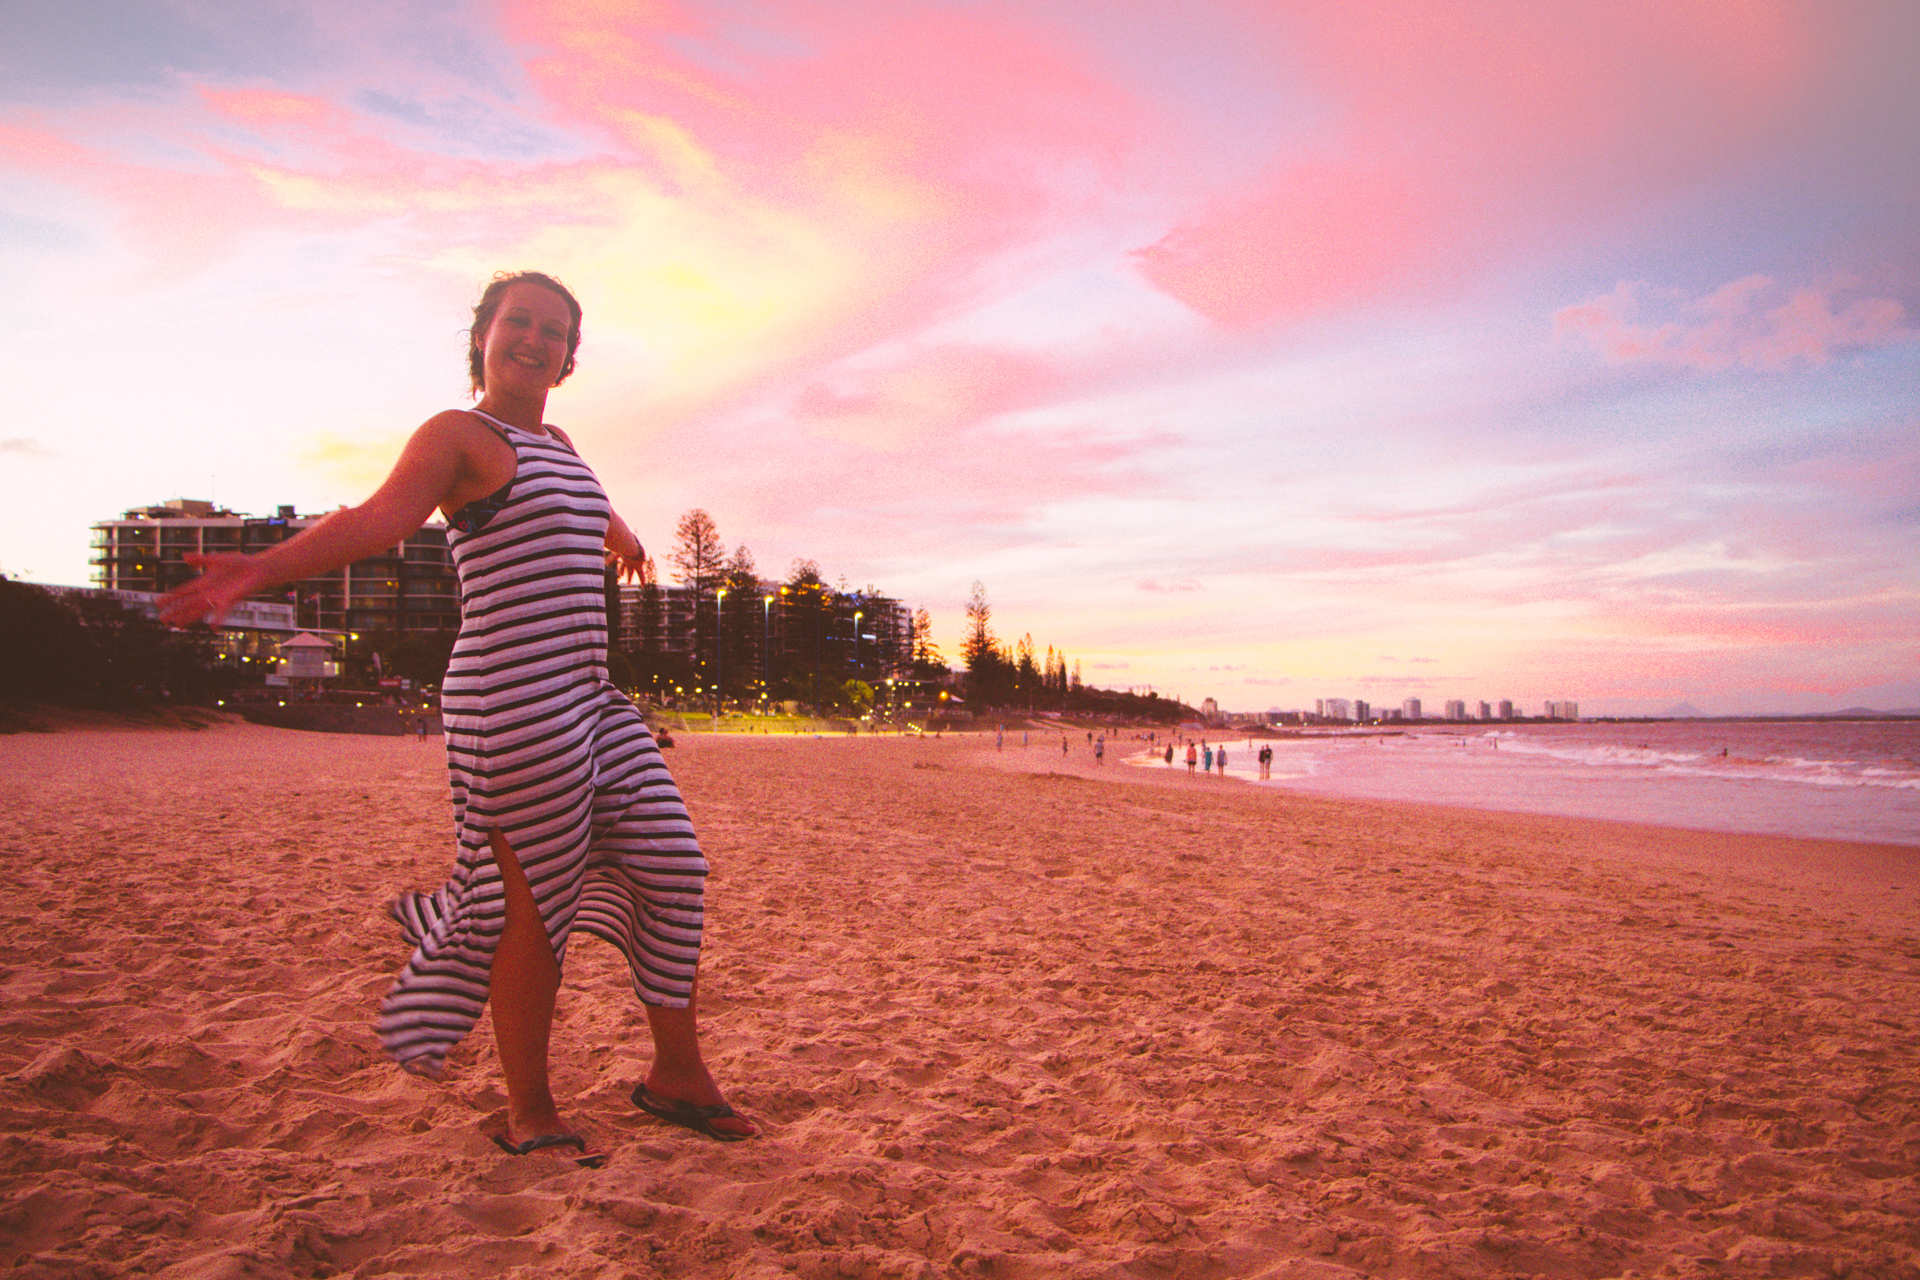 Alis enjoying sunset on a lush golden beach